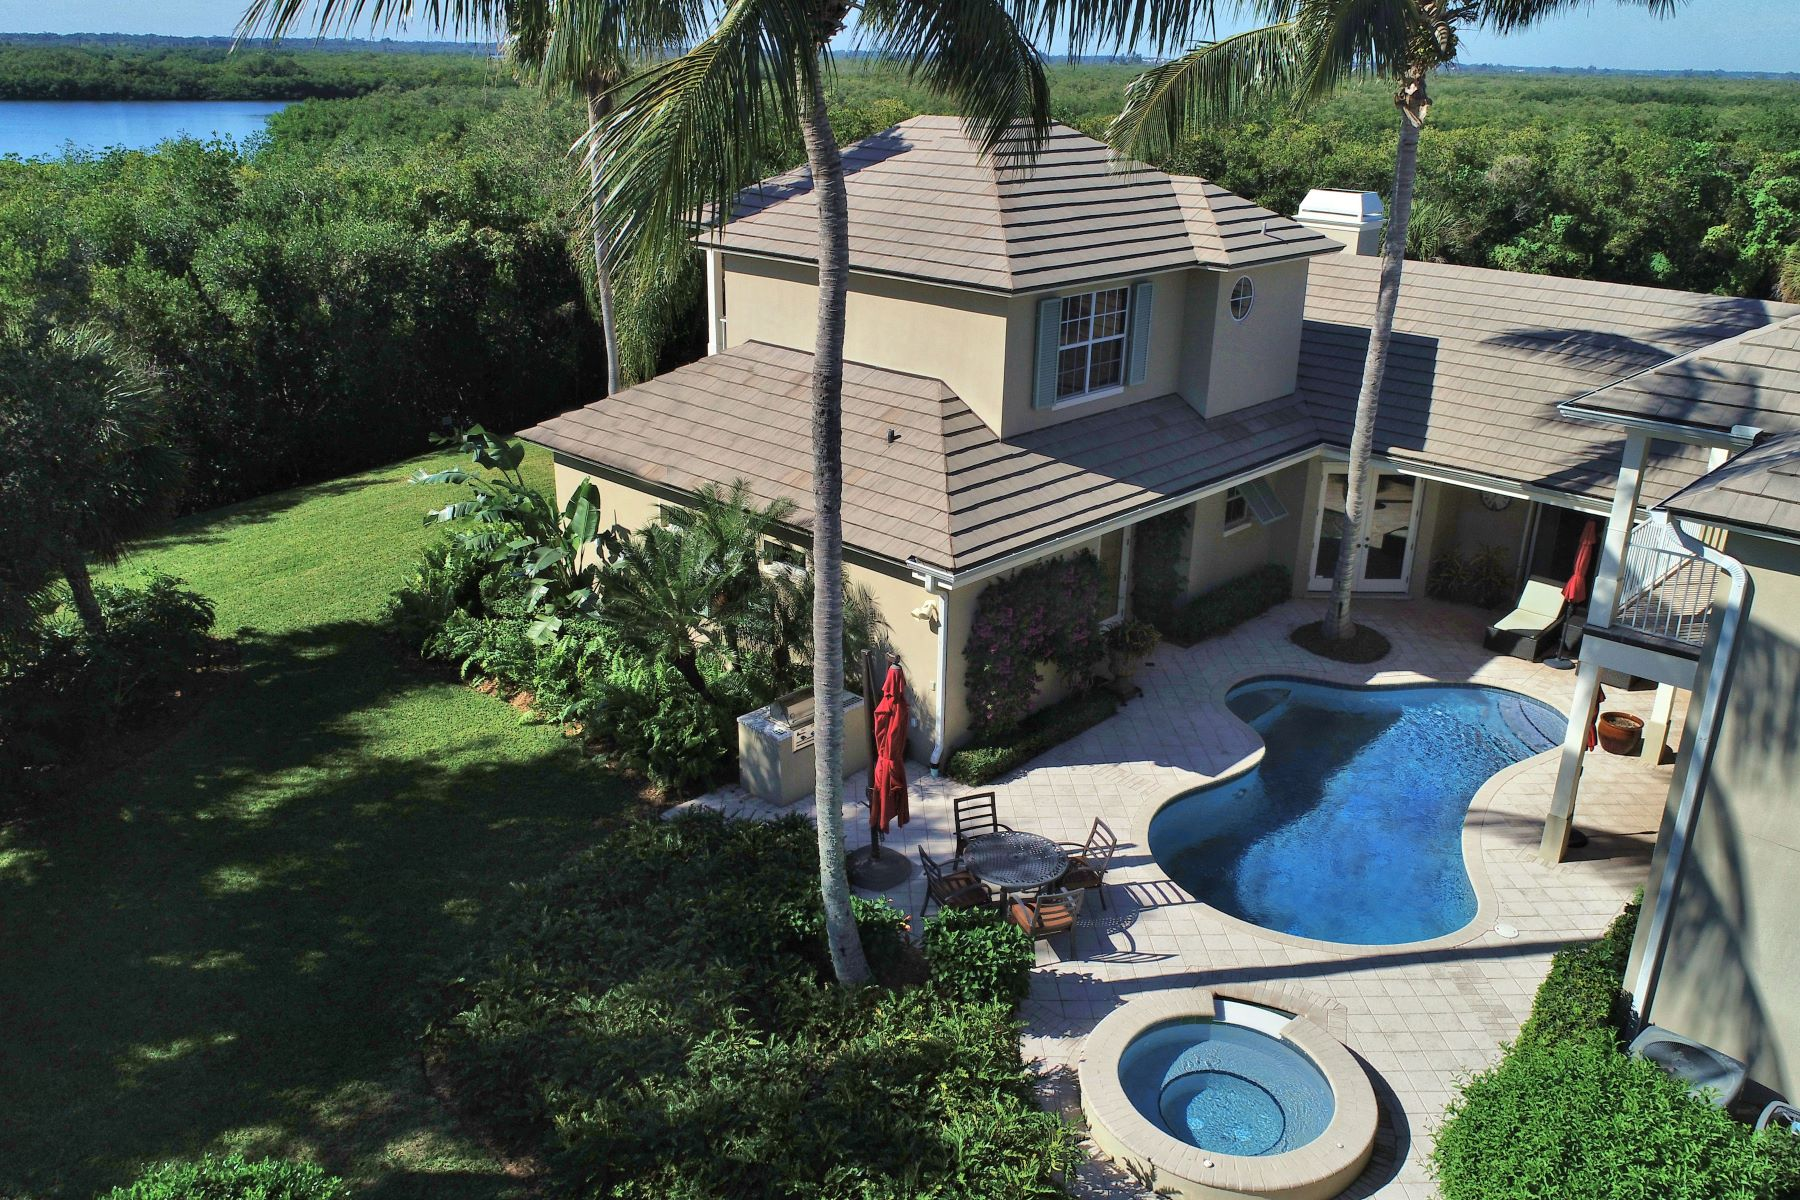 Courtyard Estate 945 Orchid Point Way Vero Beach, Florida 32963 Amerika Birlesik Devletleri